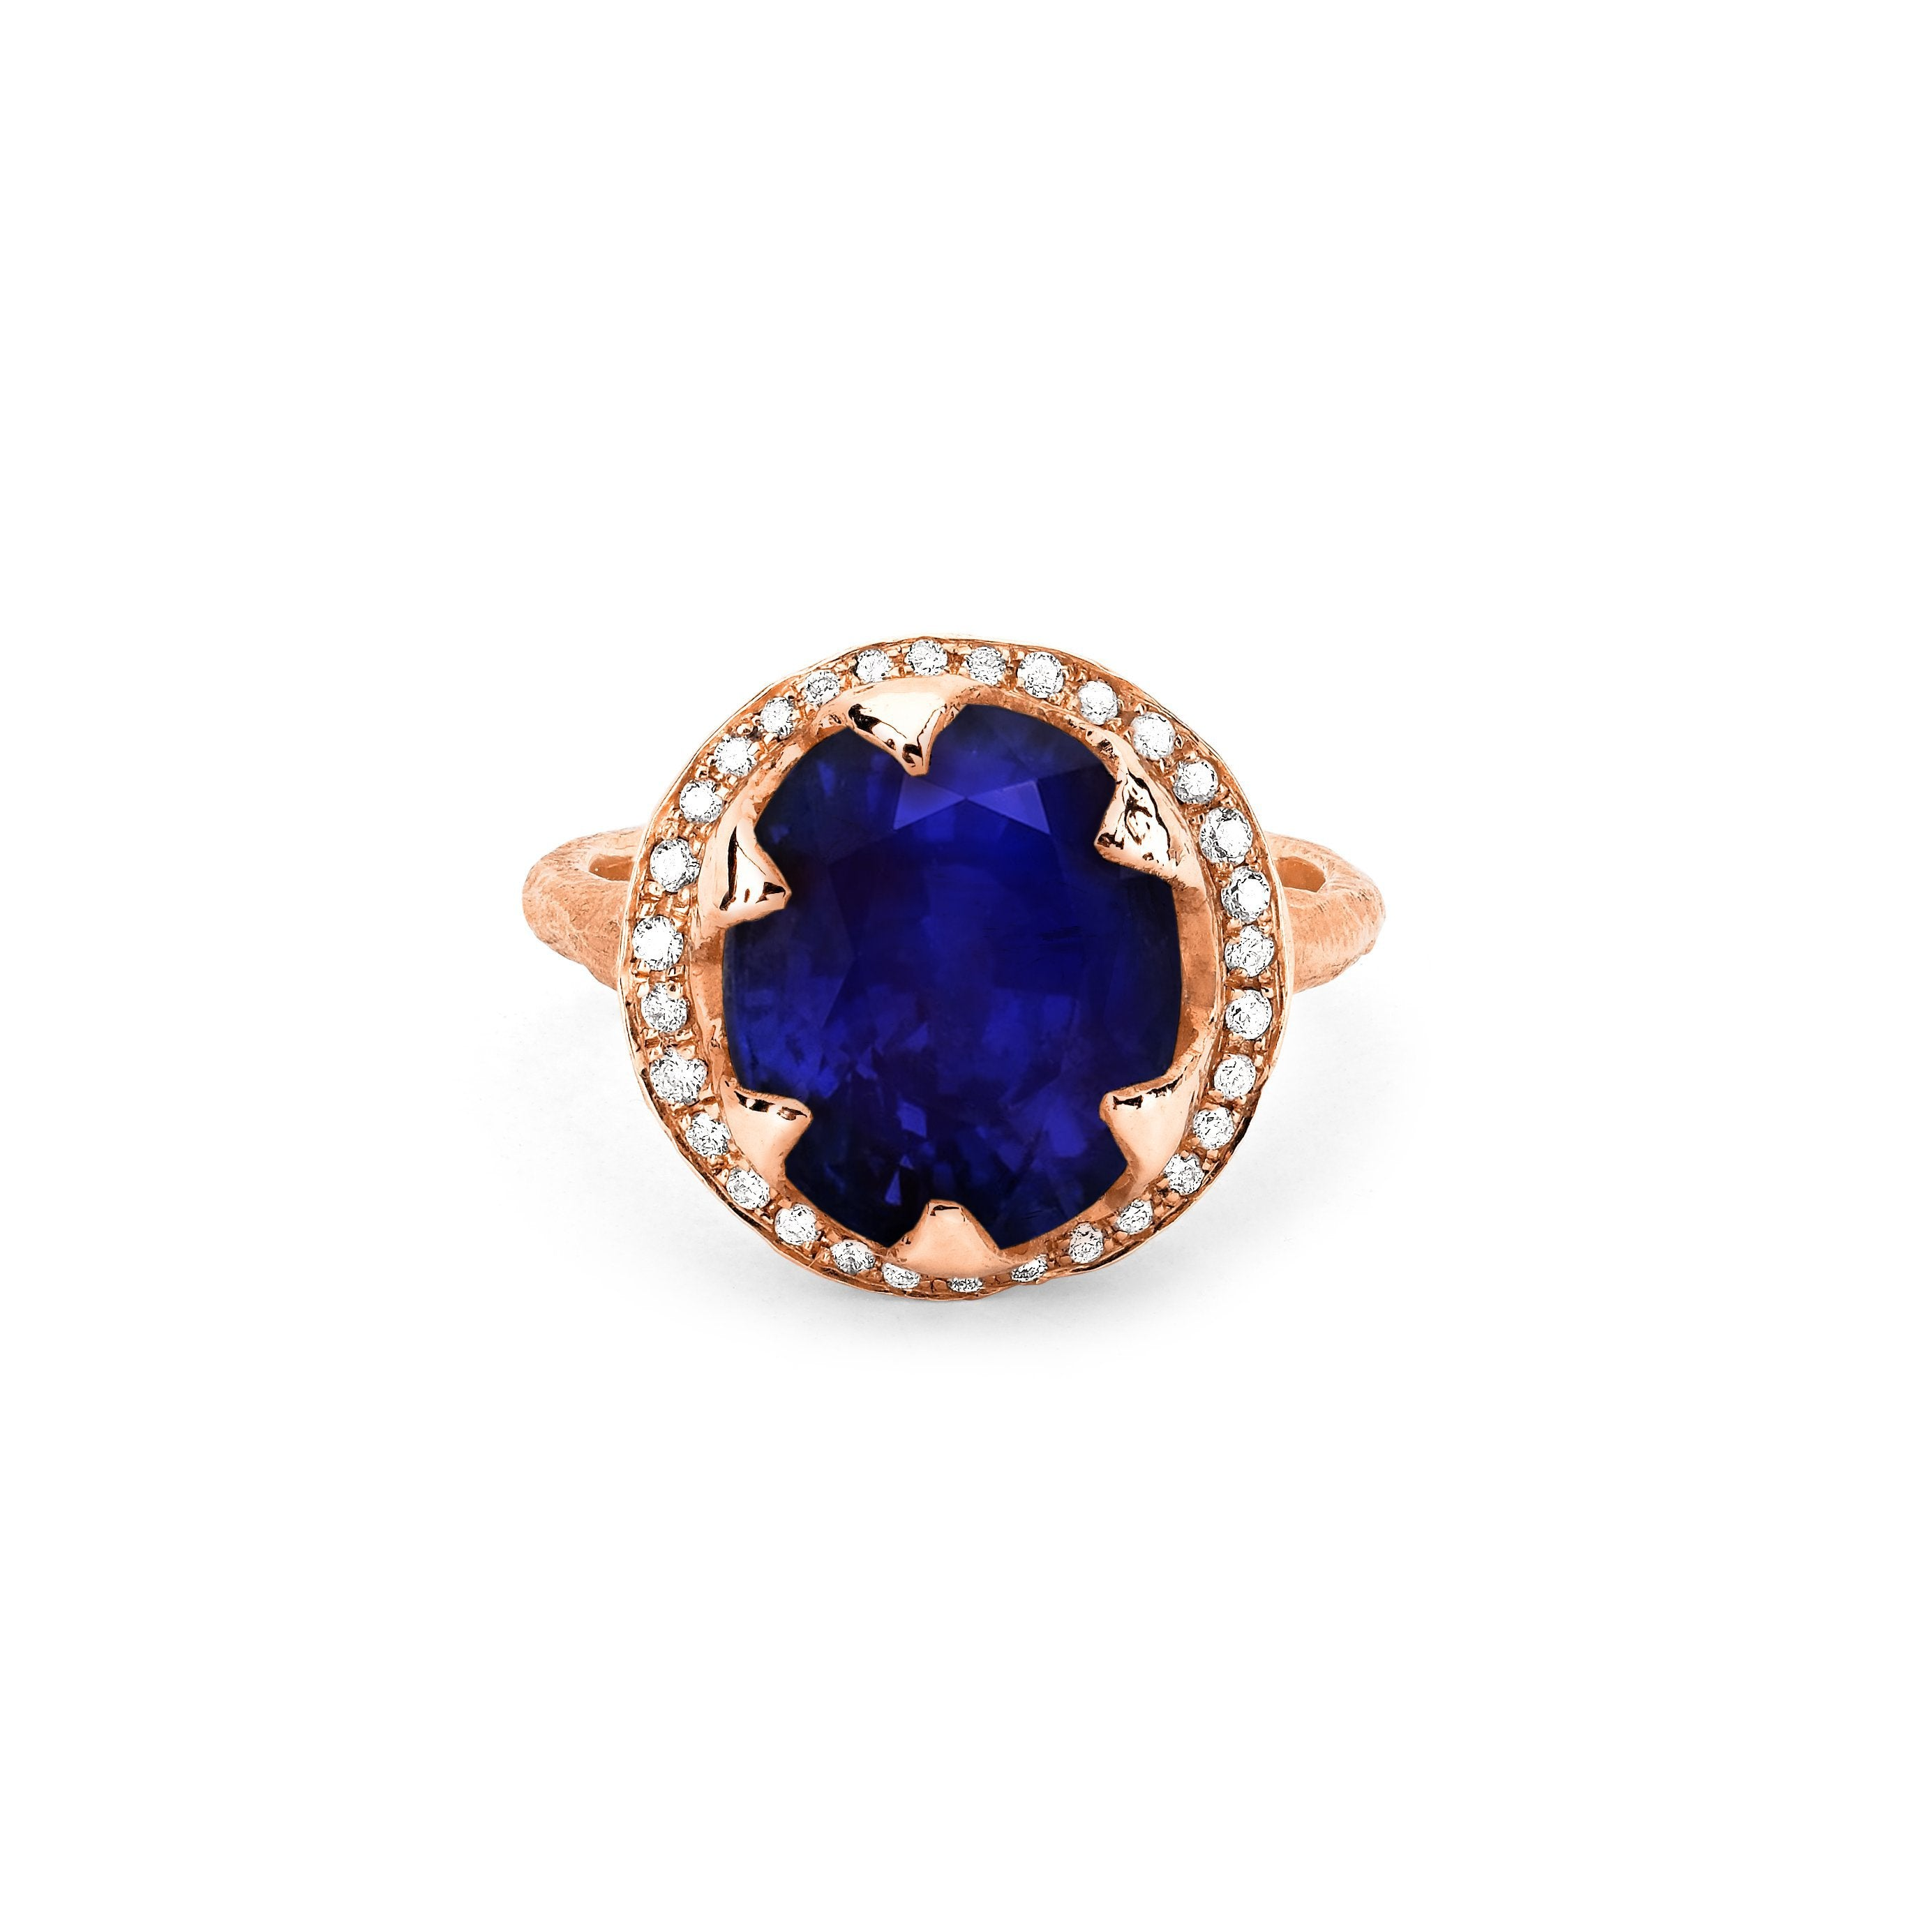 Queen Oval Sapphire Ring with Full Pavé Diamond Halo